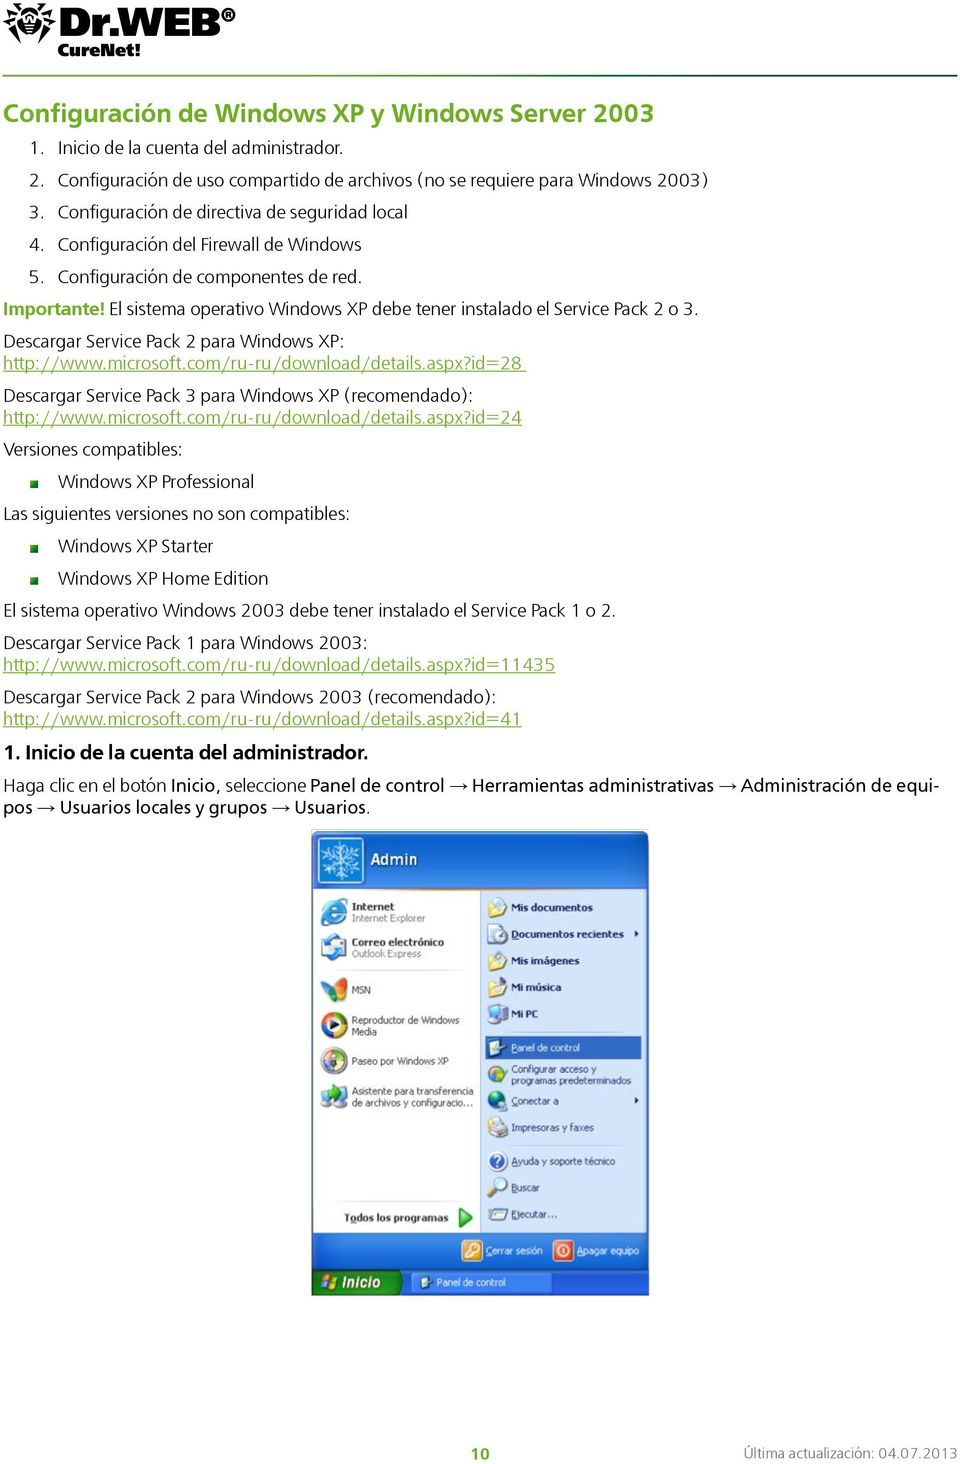 El sistema operativo Windows XP debe tener instalado el Service Pack 2 o 3. Descargar Service Pack 2 para Windows XP: http://www.microsoft.com/ru-ru/download/details.aspx?